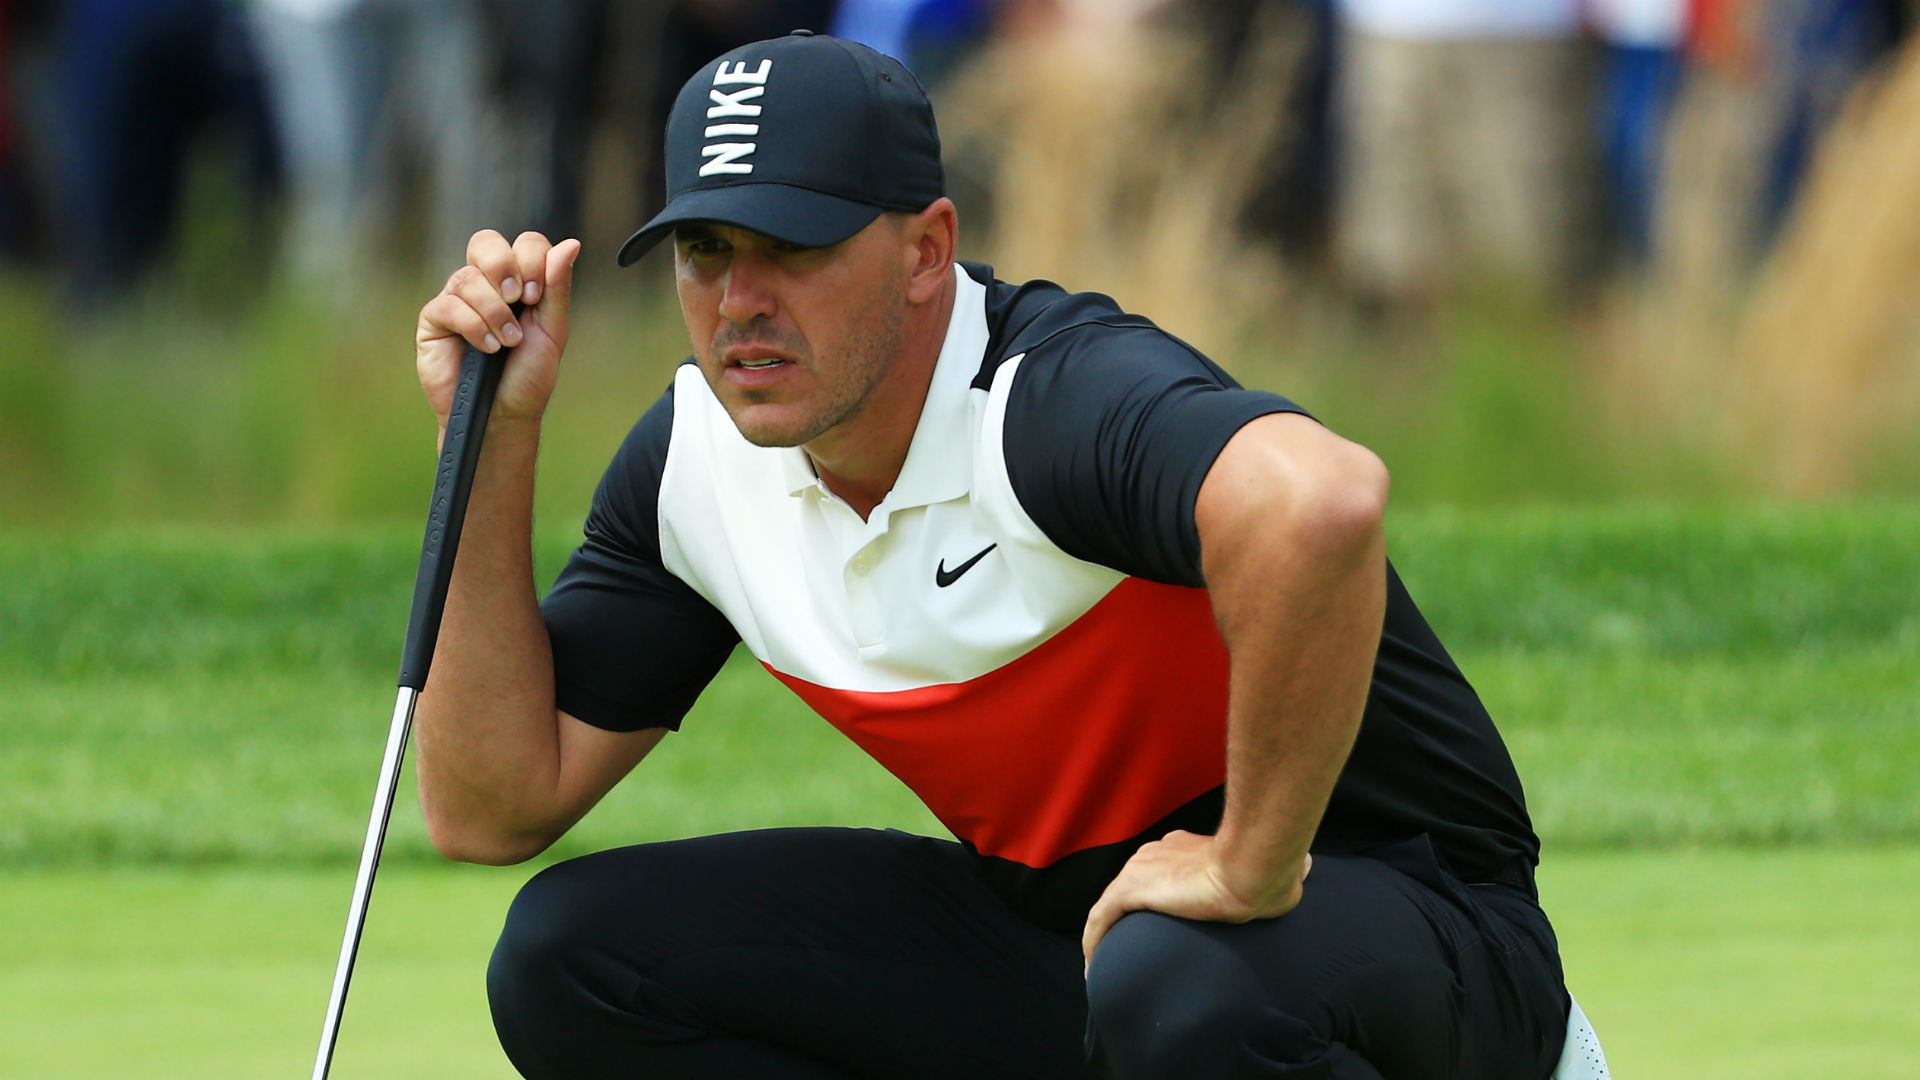 Stunning course record not enough for Koepka